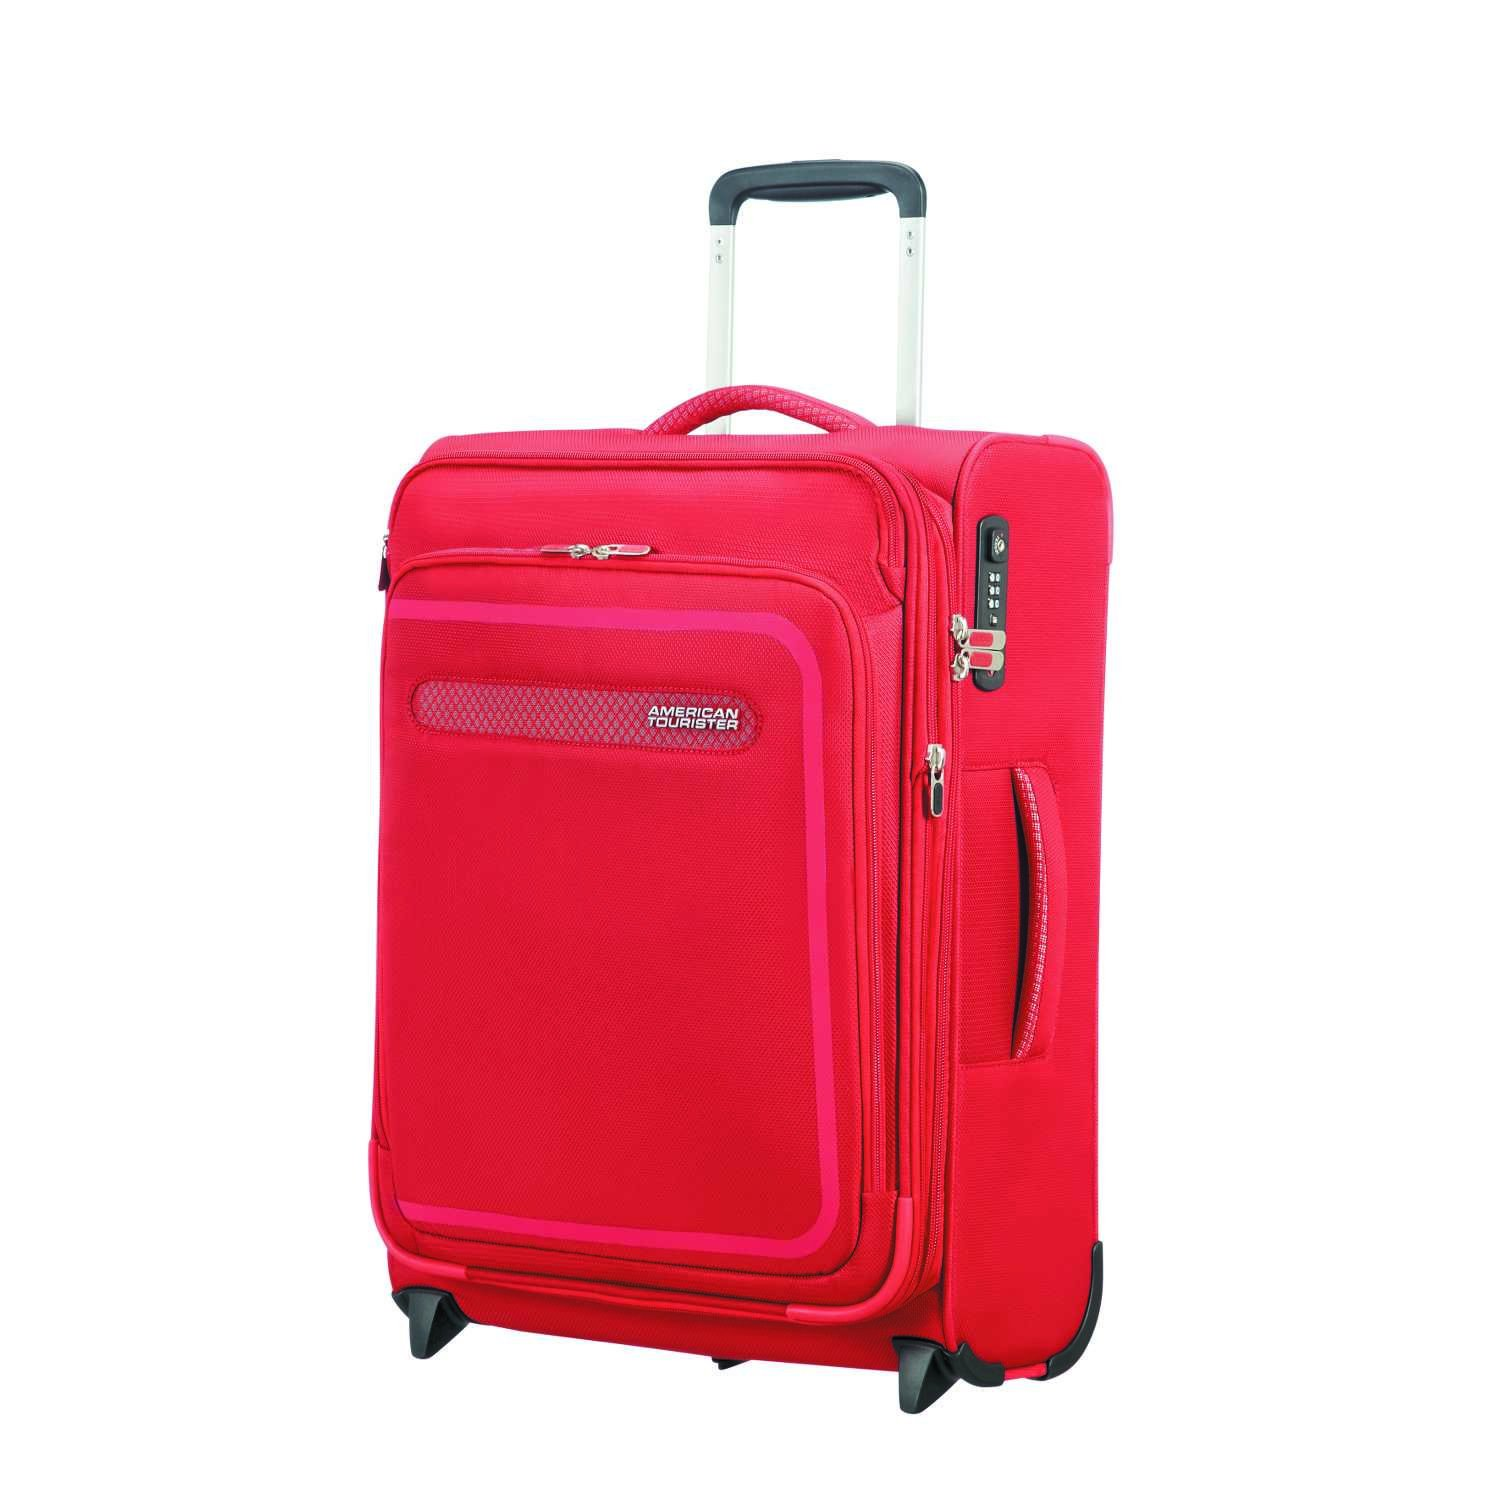 American Tourister Airbeat - Upright 55/20 Expandable Bagage cabine, 55 cm, 48 liters, Rouge (Pure Red)